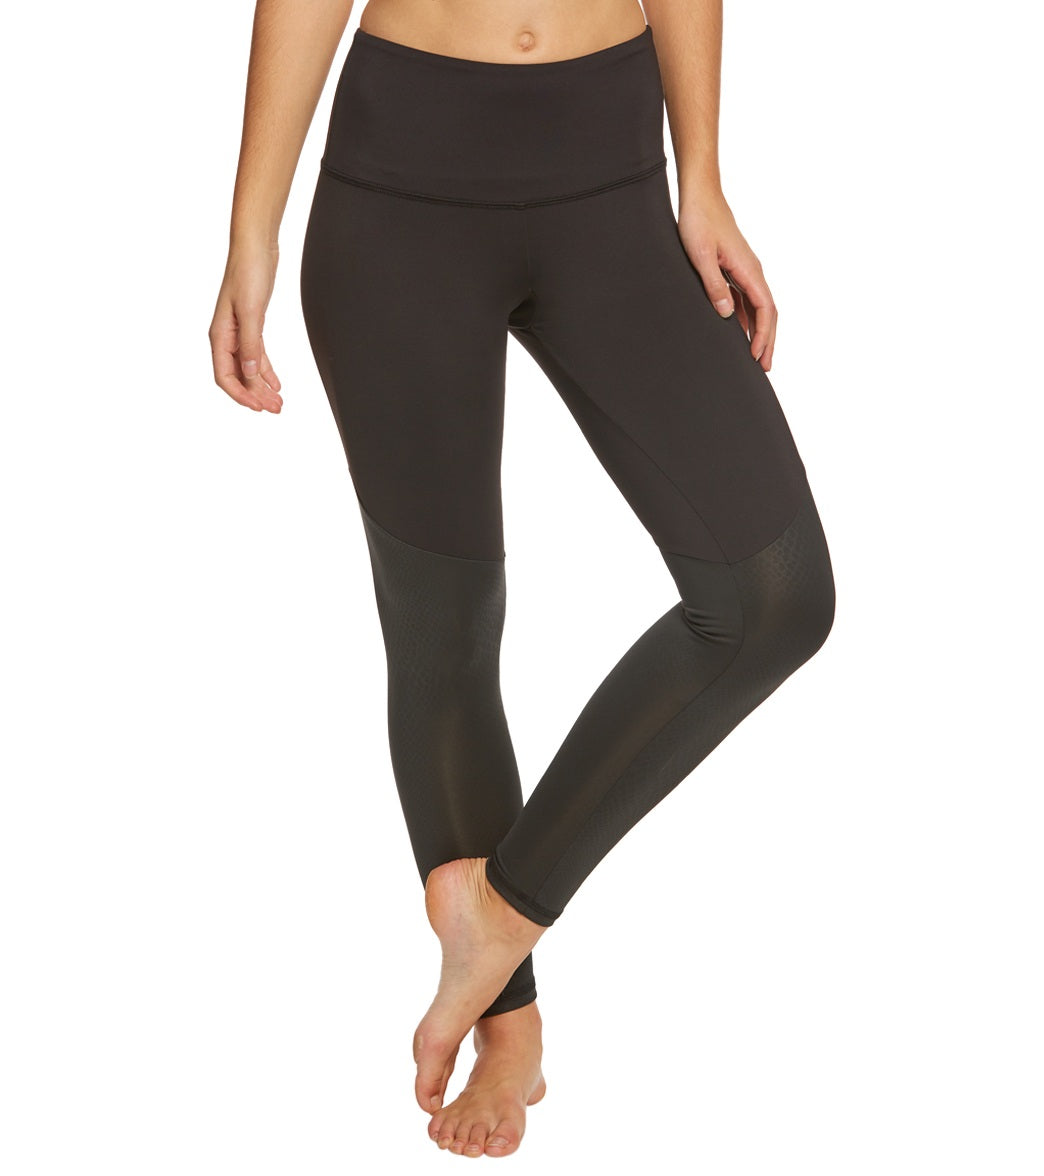 6fc9127df98e3a Strut-This The Jax Yoga Leggings at YogaOutlet.com - Free Shipping